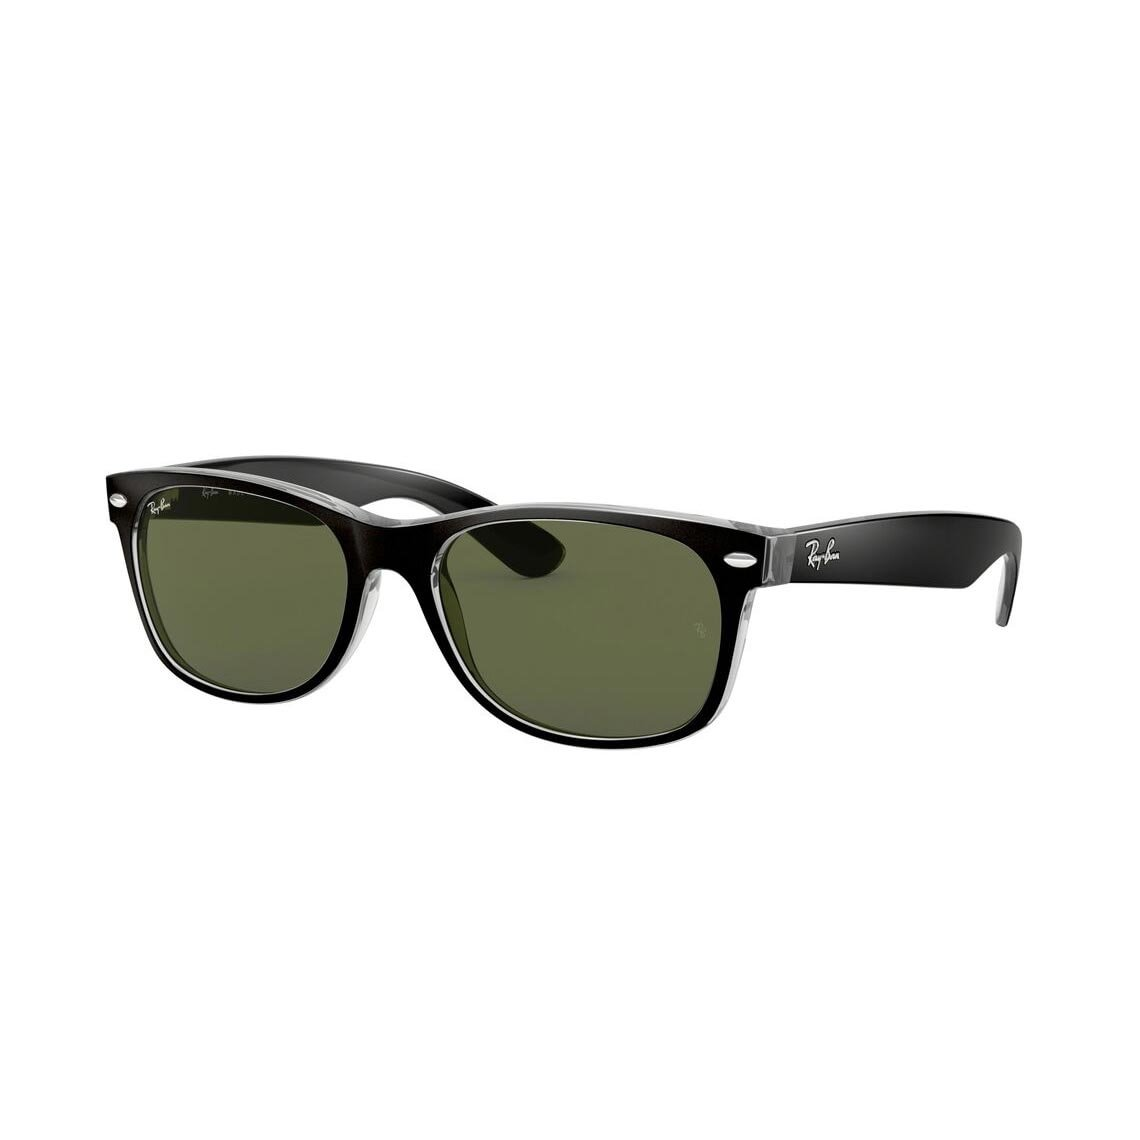 Ray-Ban New Wayfarer RB2132 6052 55